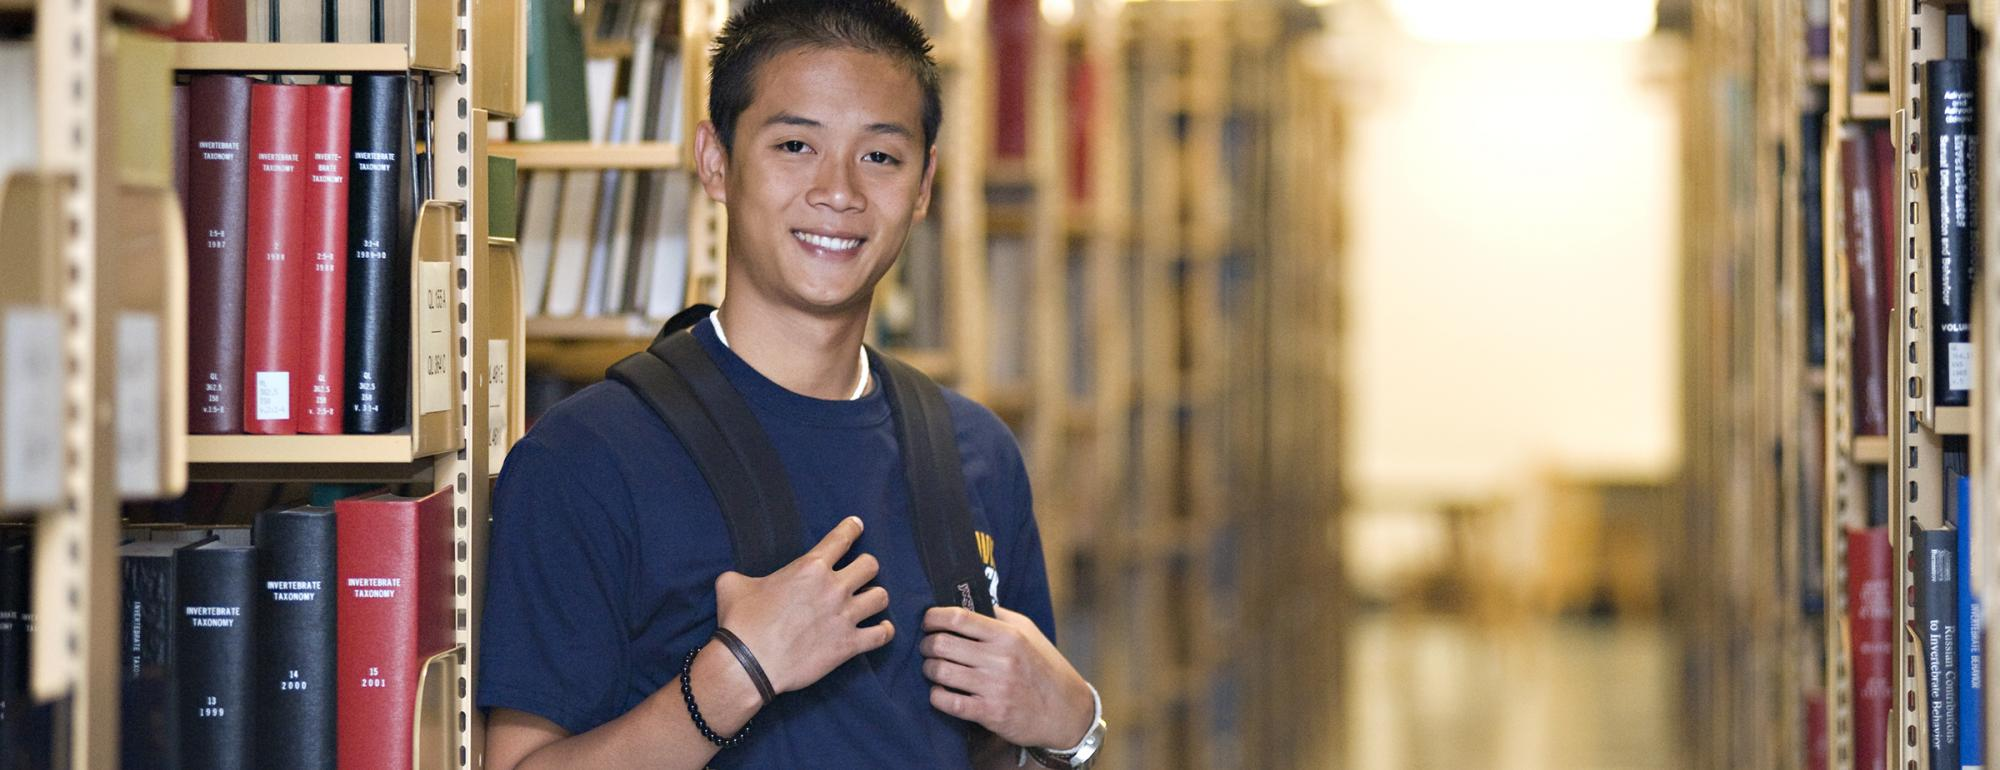 student standing in library stacks